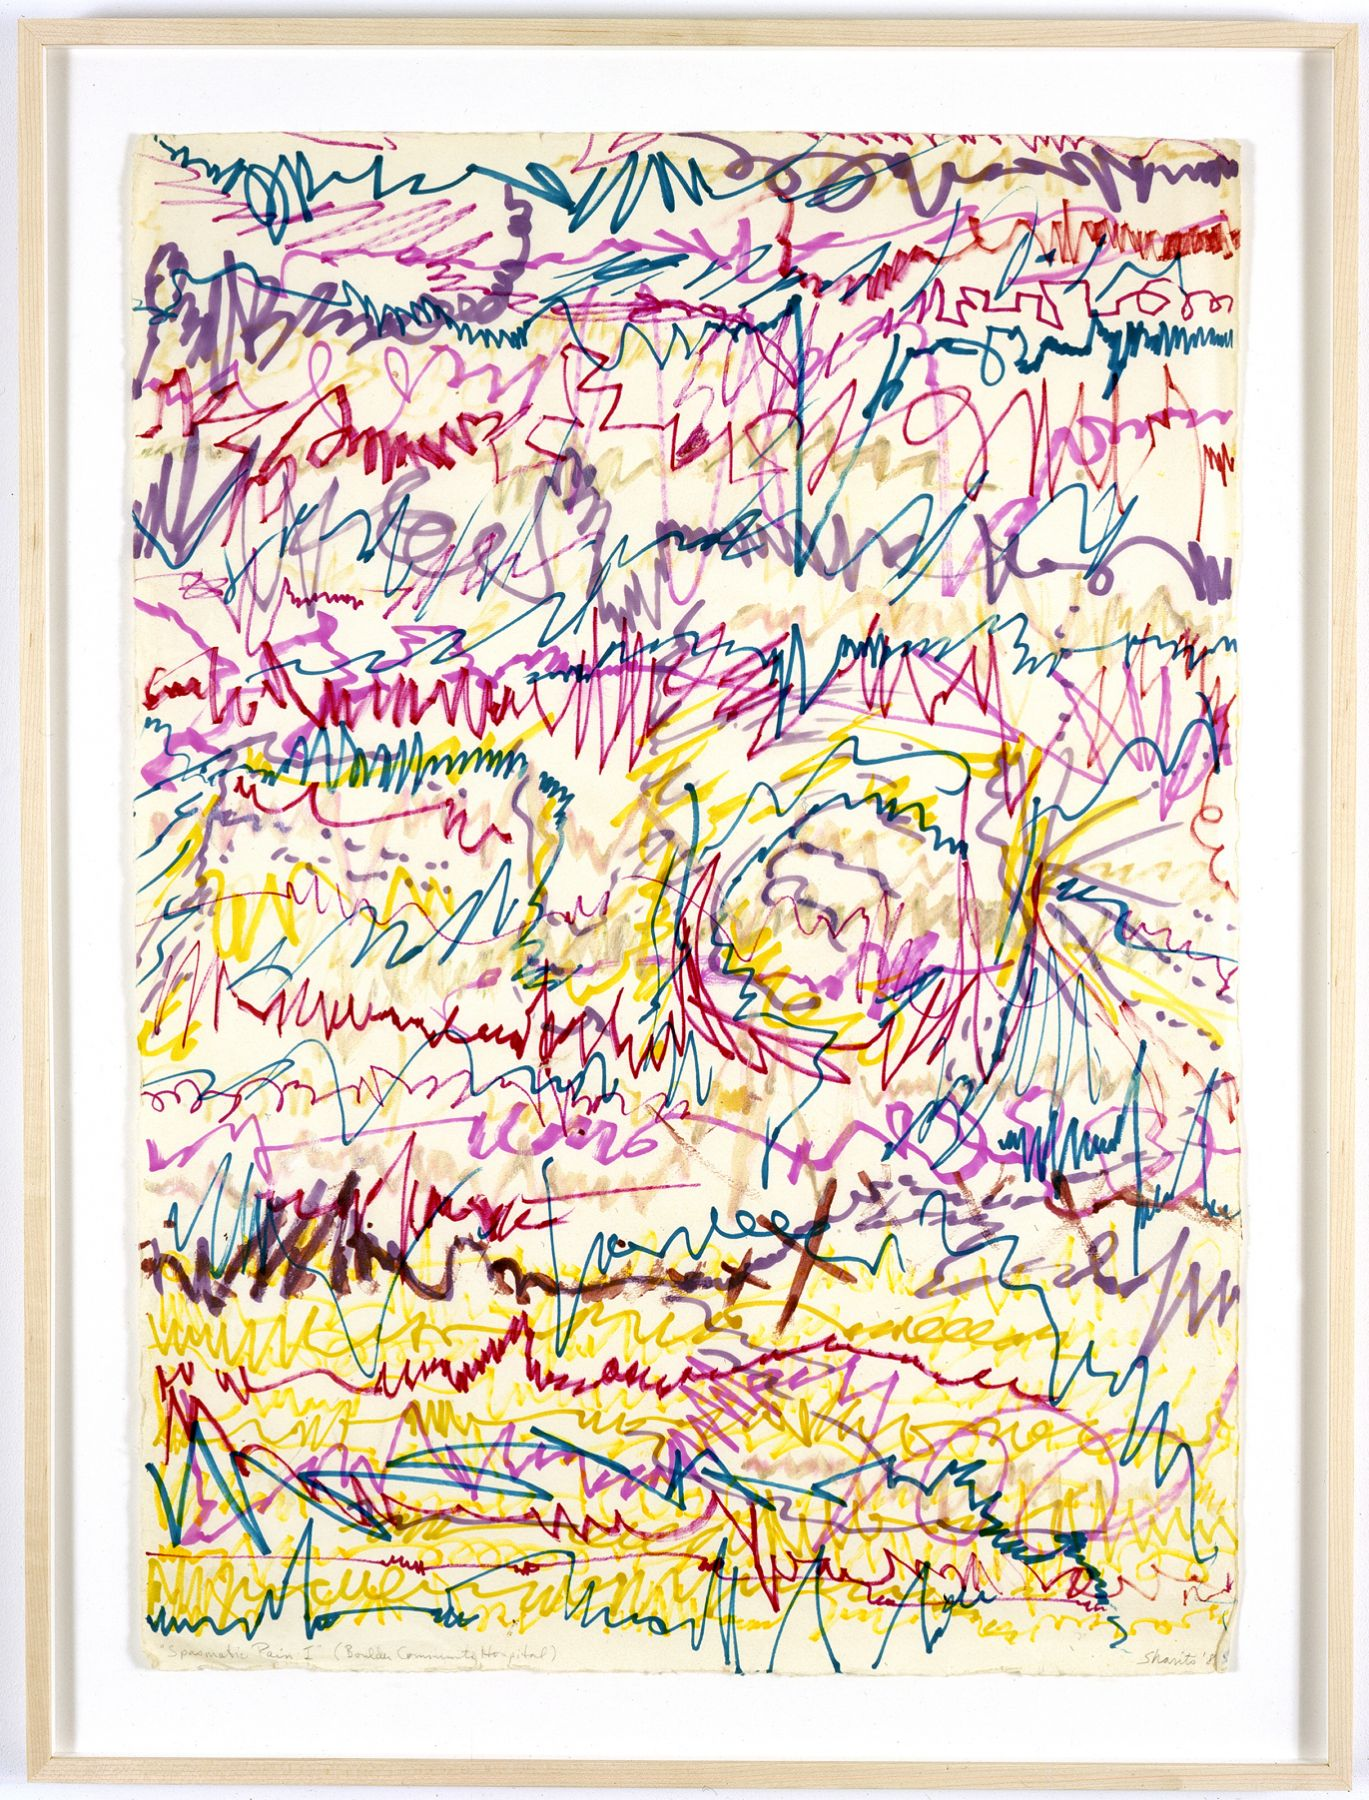 Paul Sharits, Spasmatic Pain I (Boulder Community Hospital), 1981, marker on paper, 28 x 20 inches